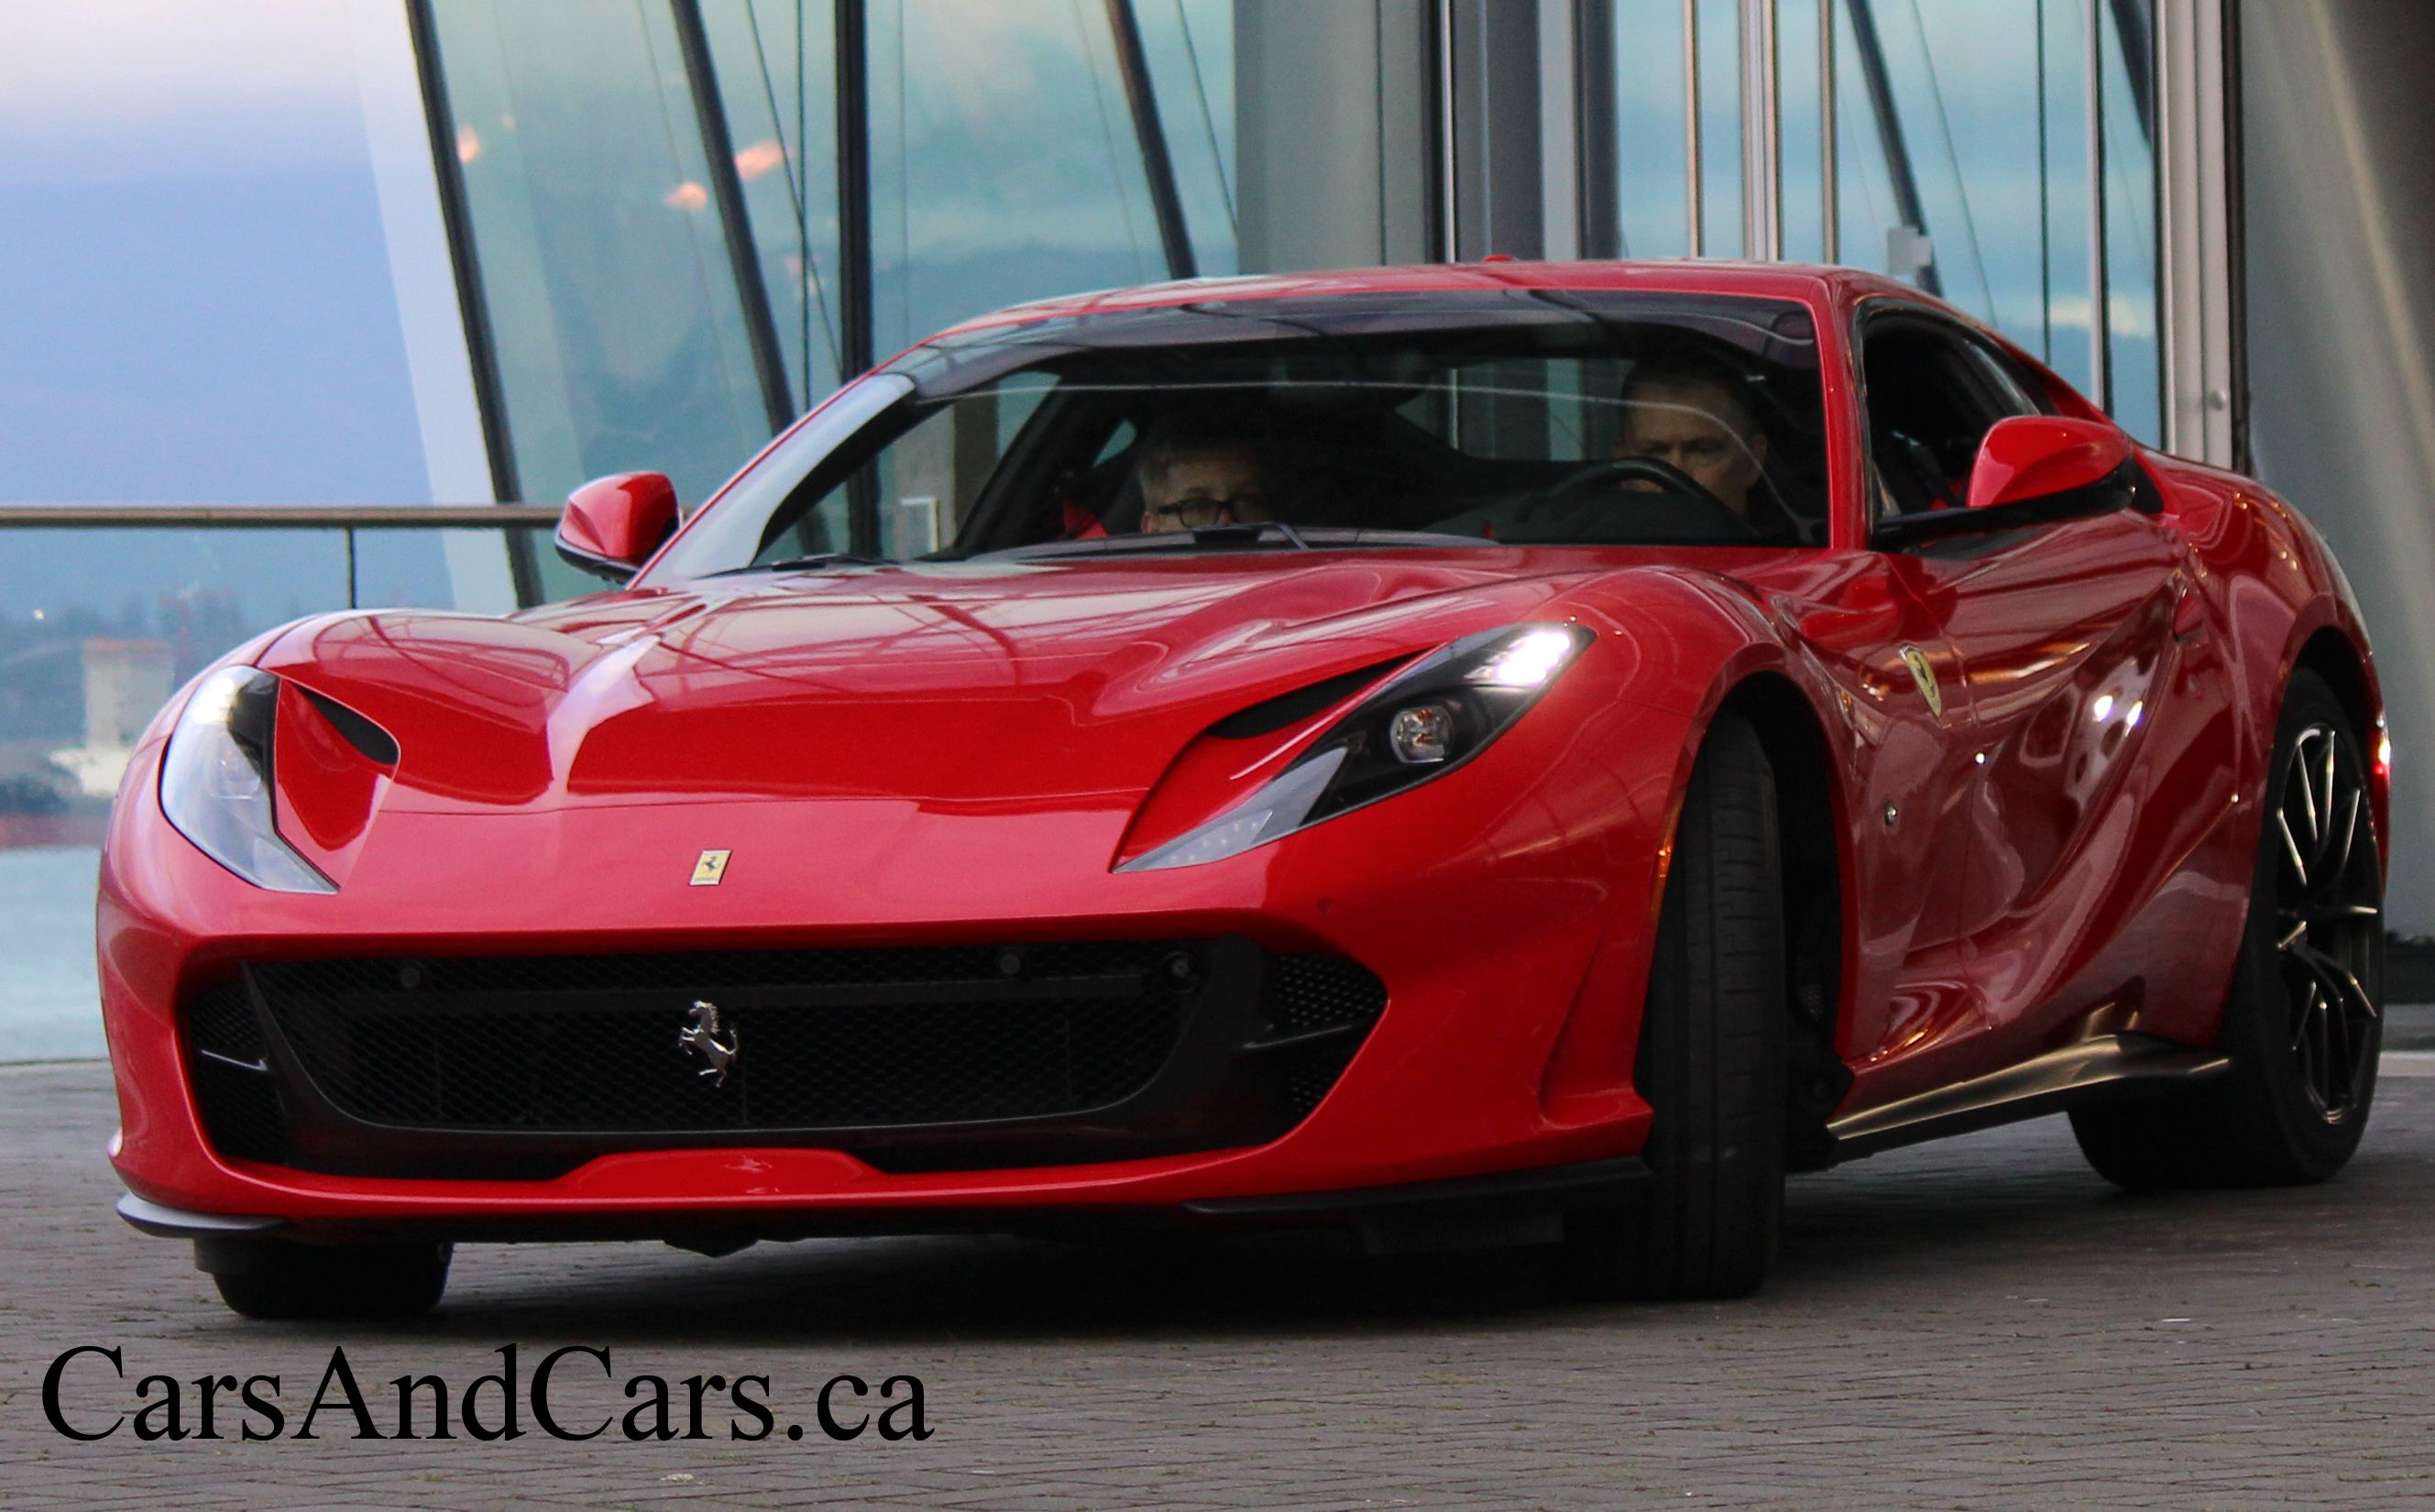 Ferrari 812 Superfast Pictures Of Sports Cars Expensive Sports Cars Sports Cars Ferrari